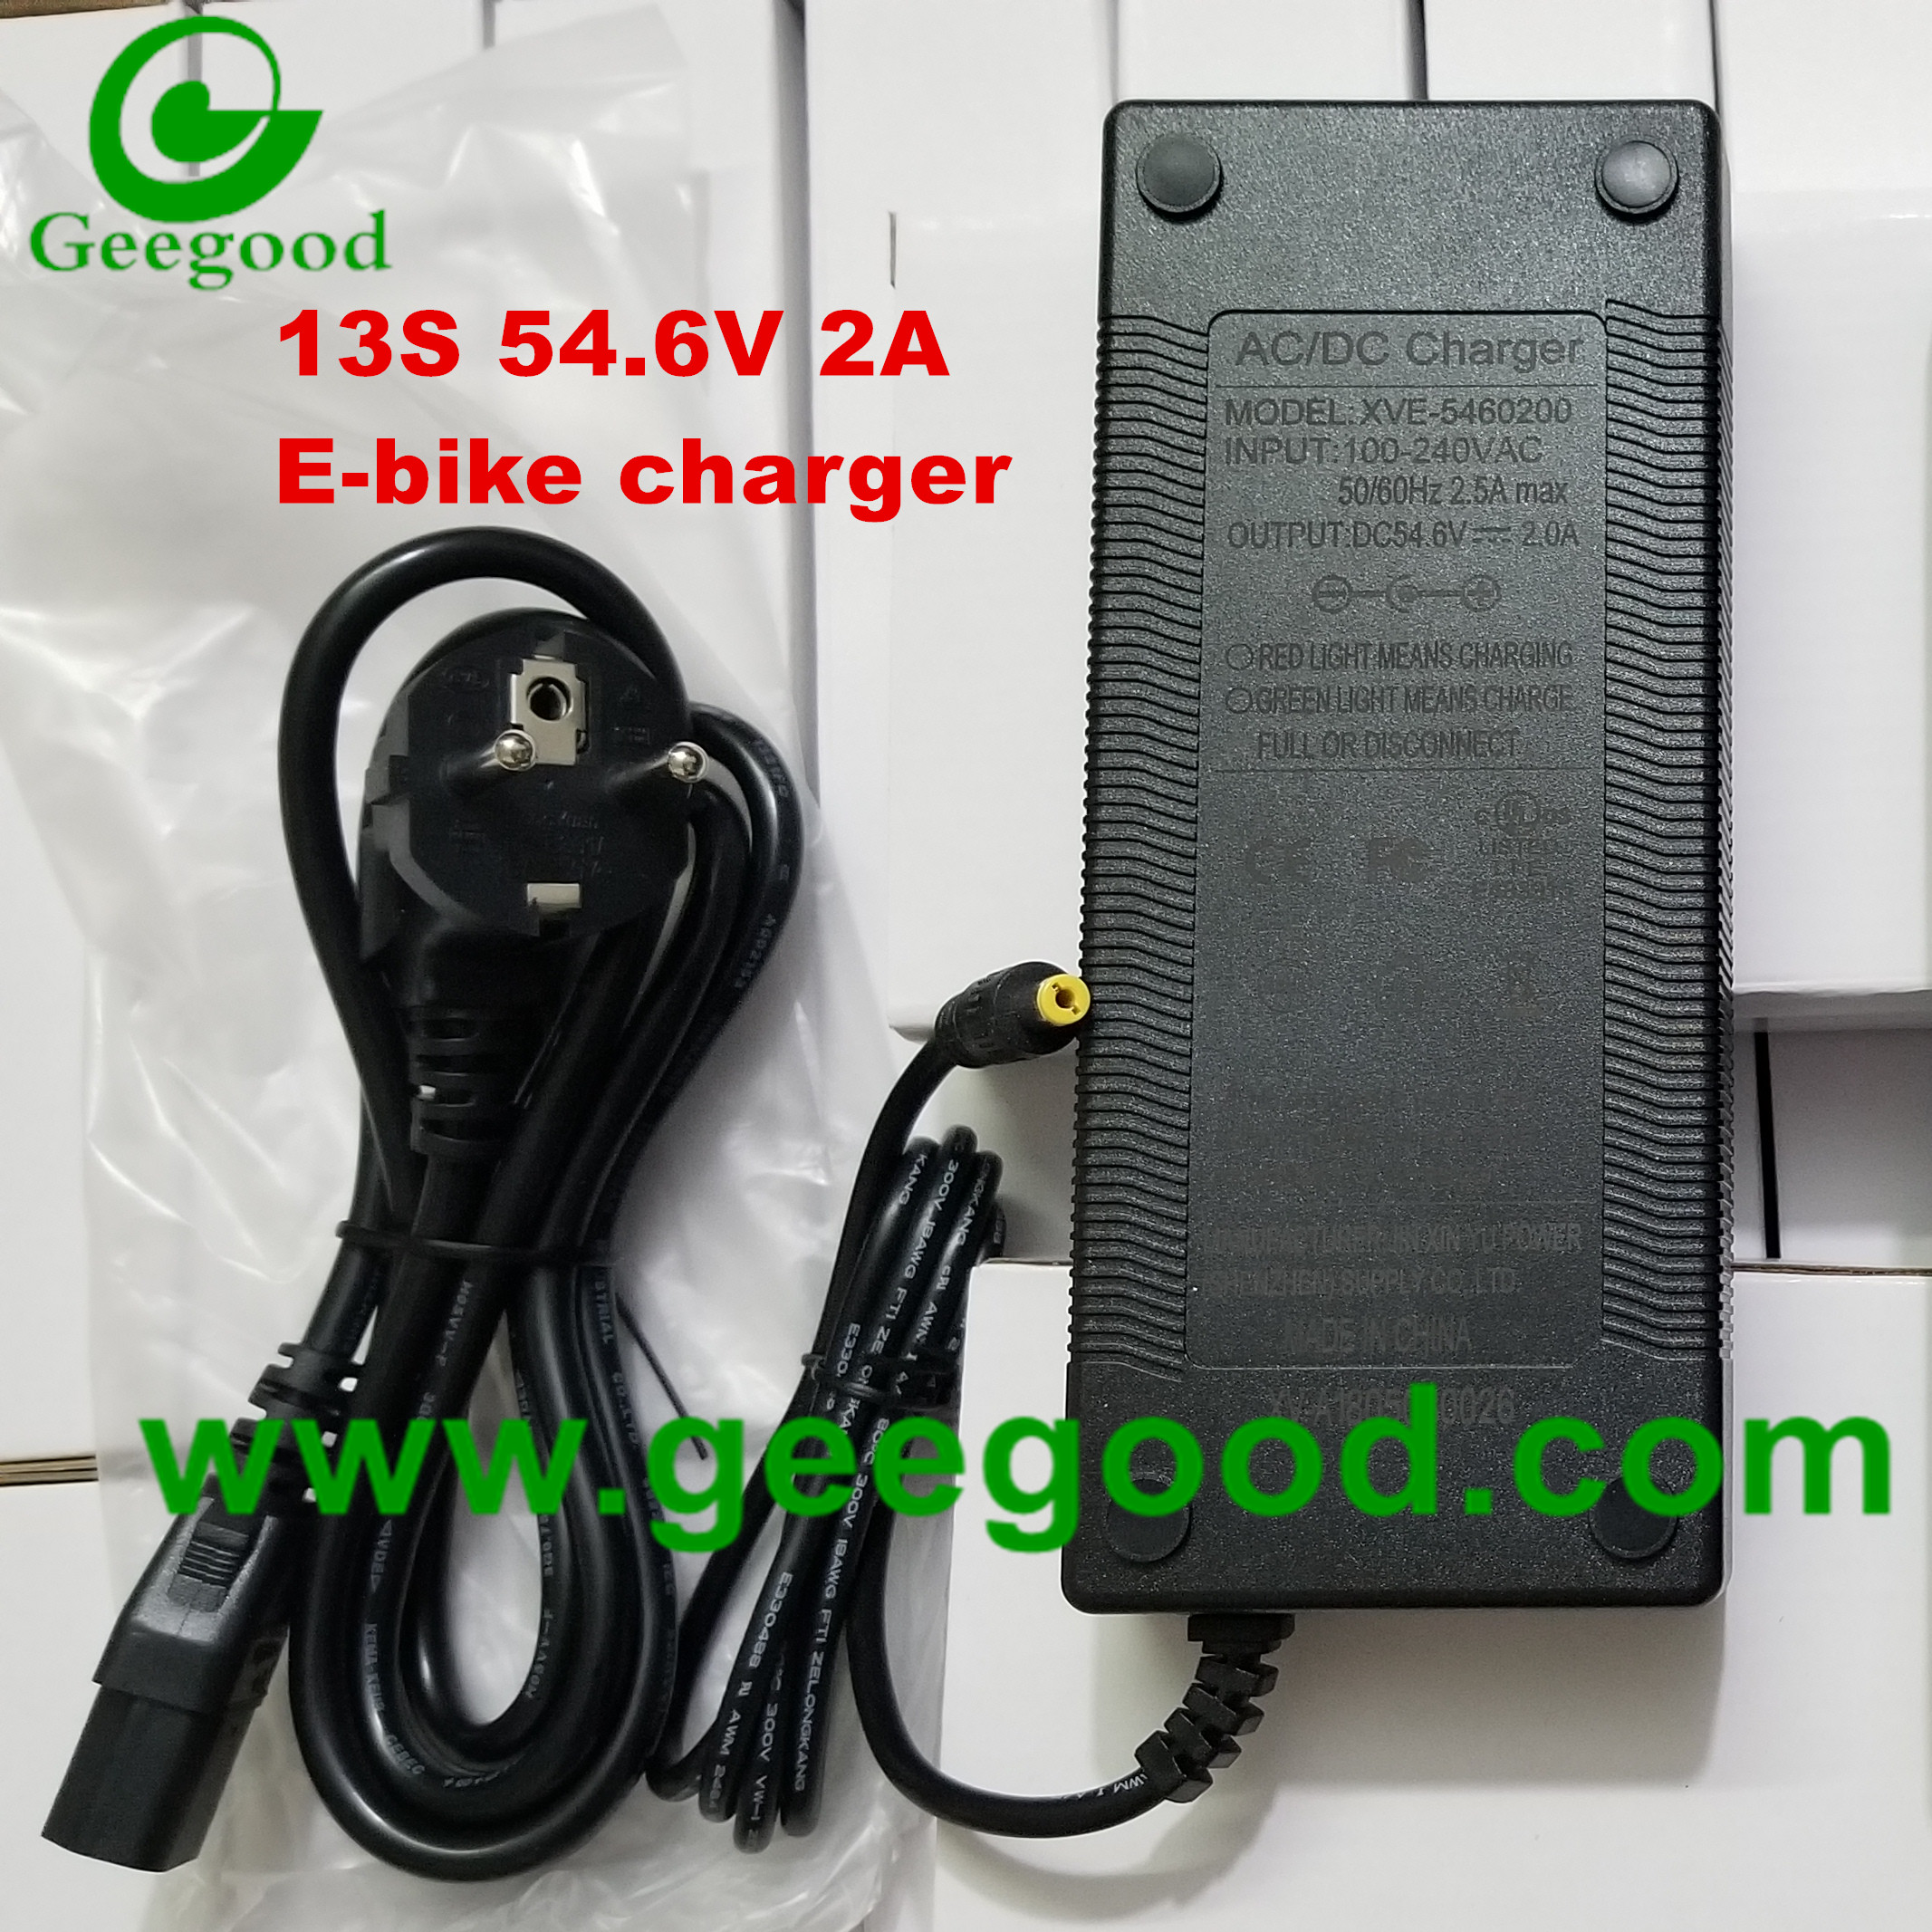 13S 54.6V 2A charger EV charger E-bike charger OEM ODM